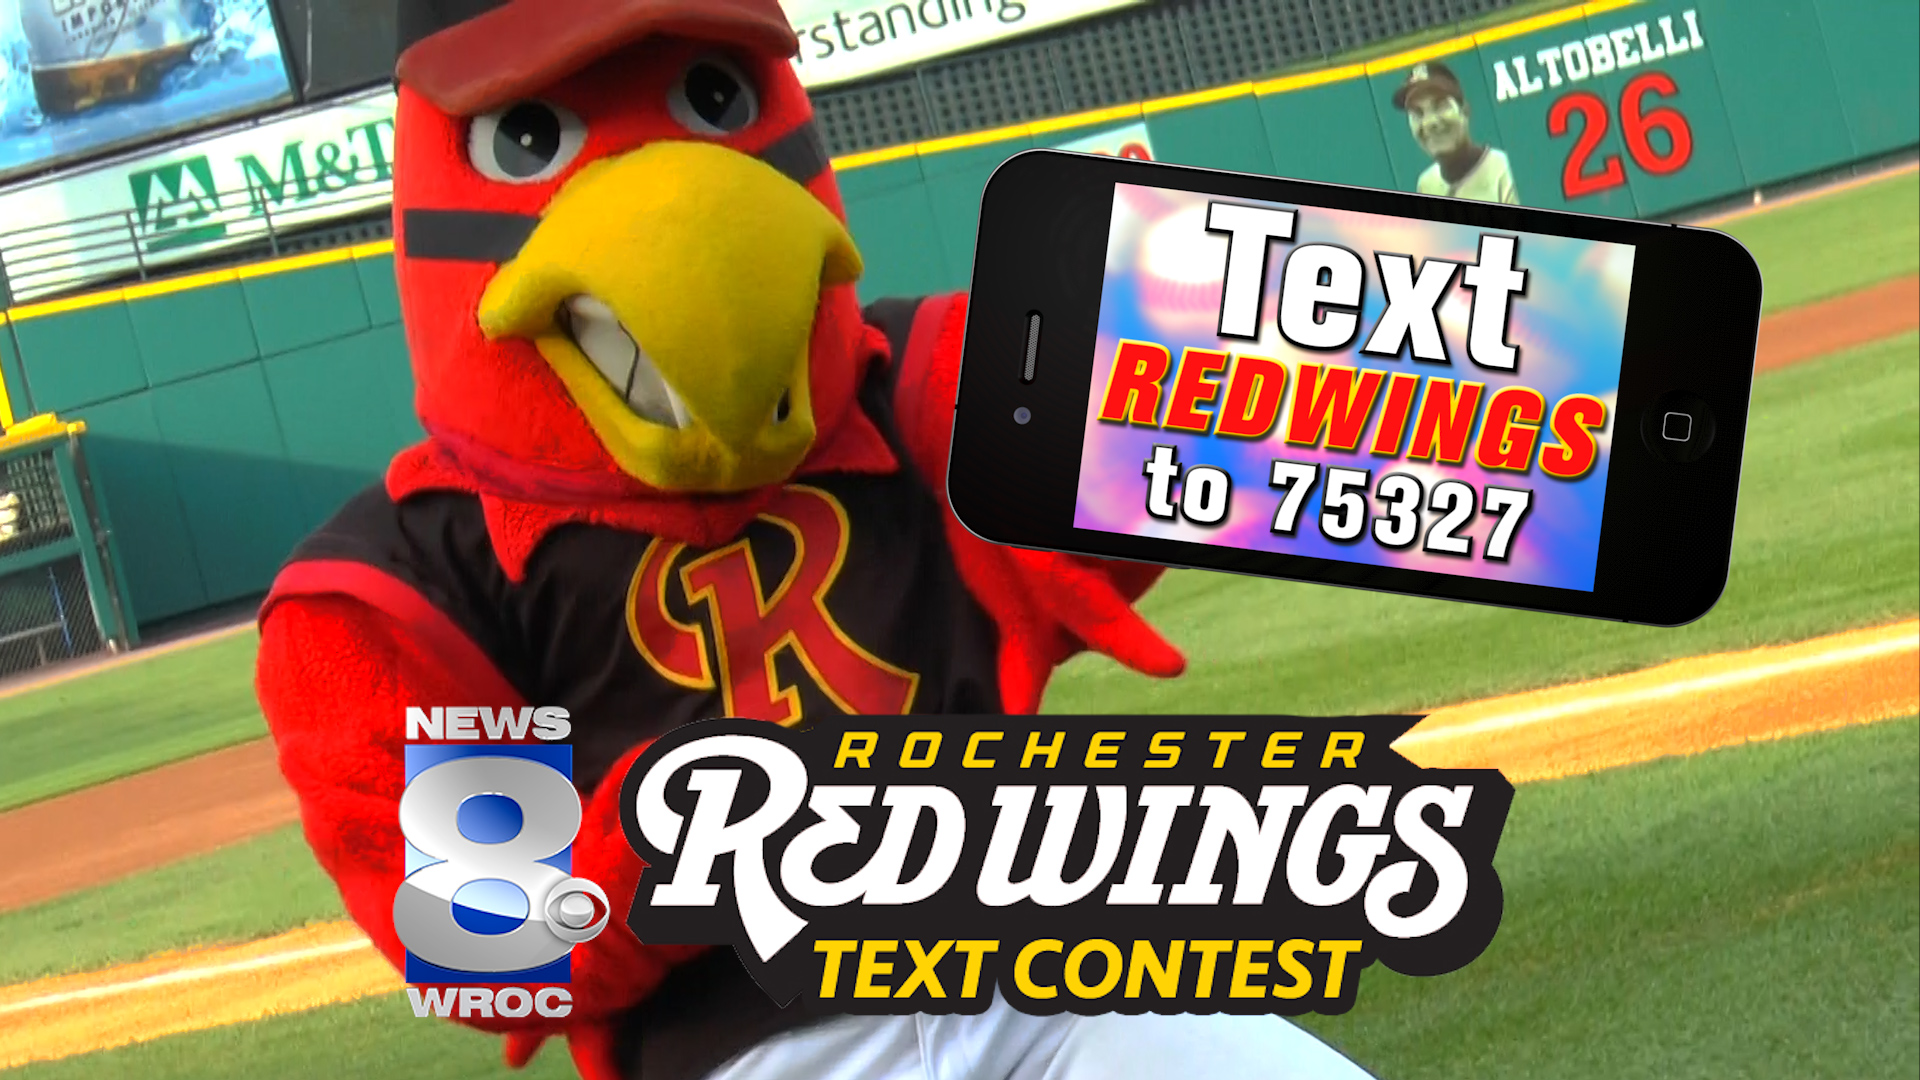 Red Wings Text To Win.00_01_58_12.Still002_1524679198698.jpg.jpg